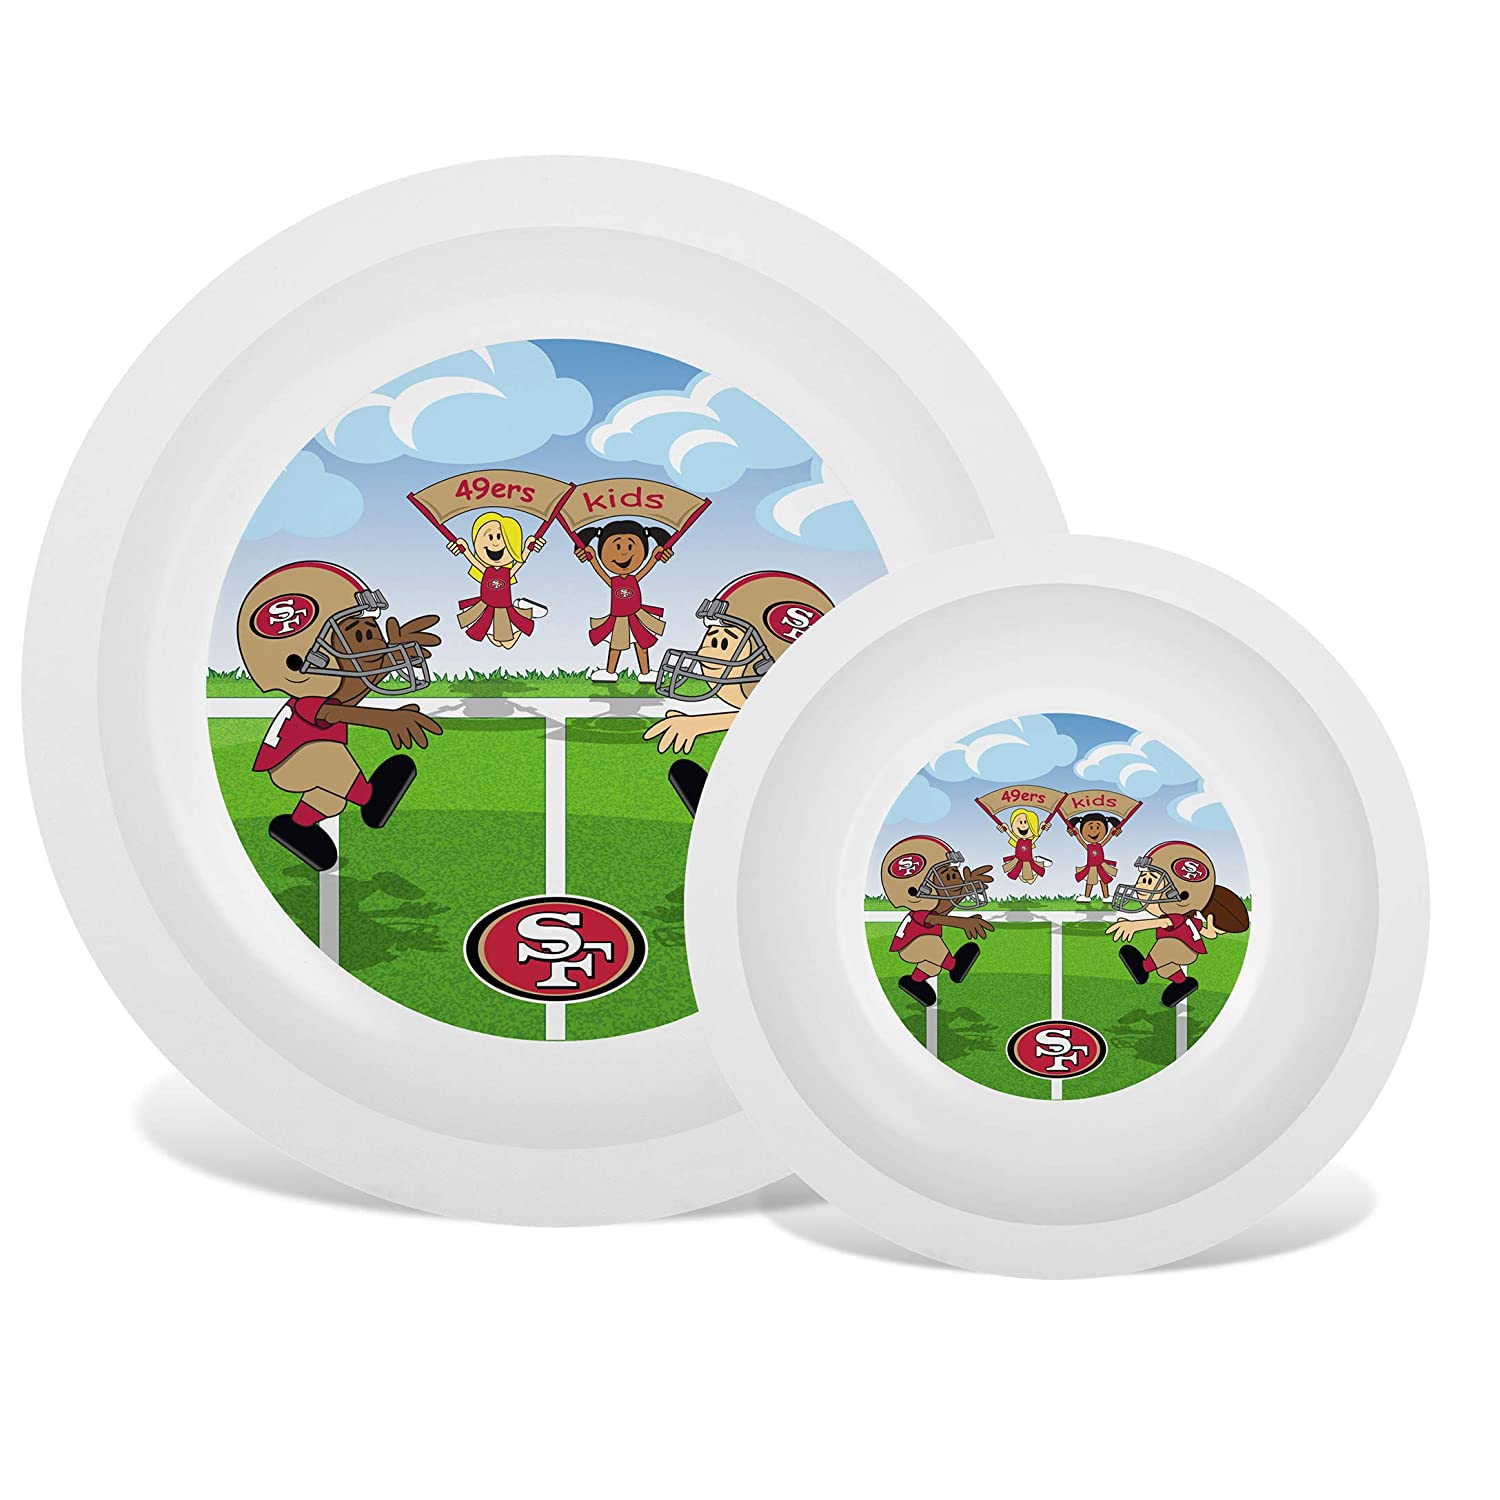 Baby Fanatic NFL Legacy Infant Plate & Bowl Set, San Francisco 49ers, for Ages 6 Months & Up